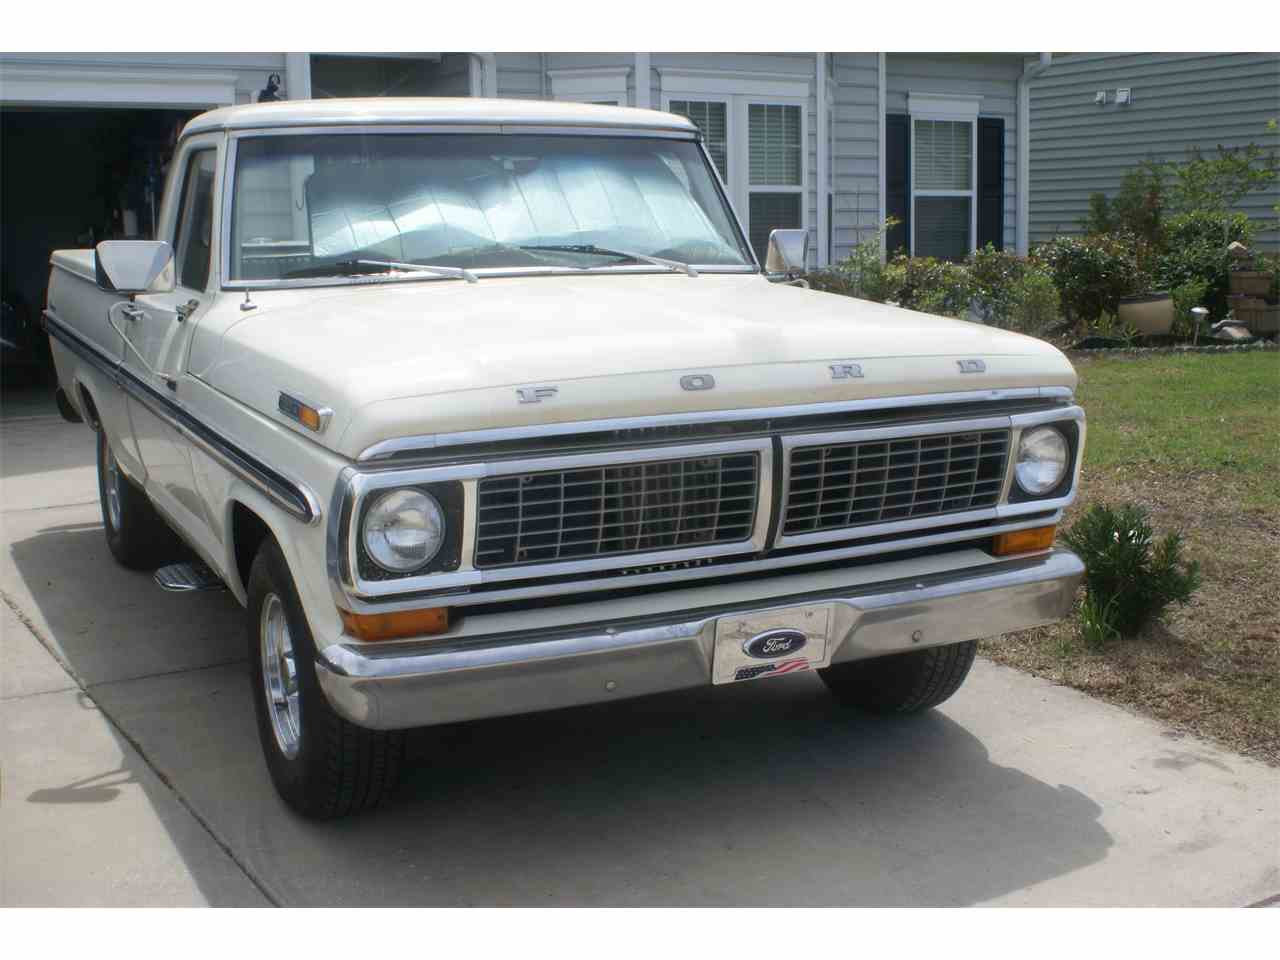 Large Picture of '70 Ford Pickup - $20,000.00 Offered by a Private Seller - J8HJ